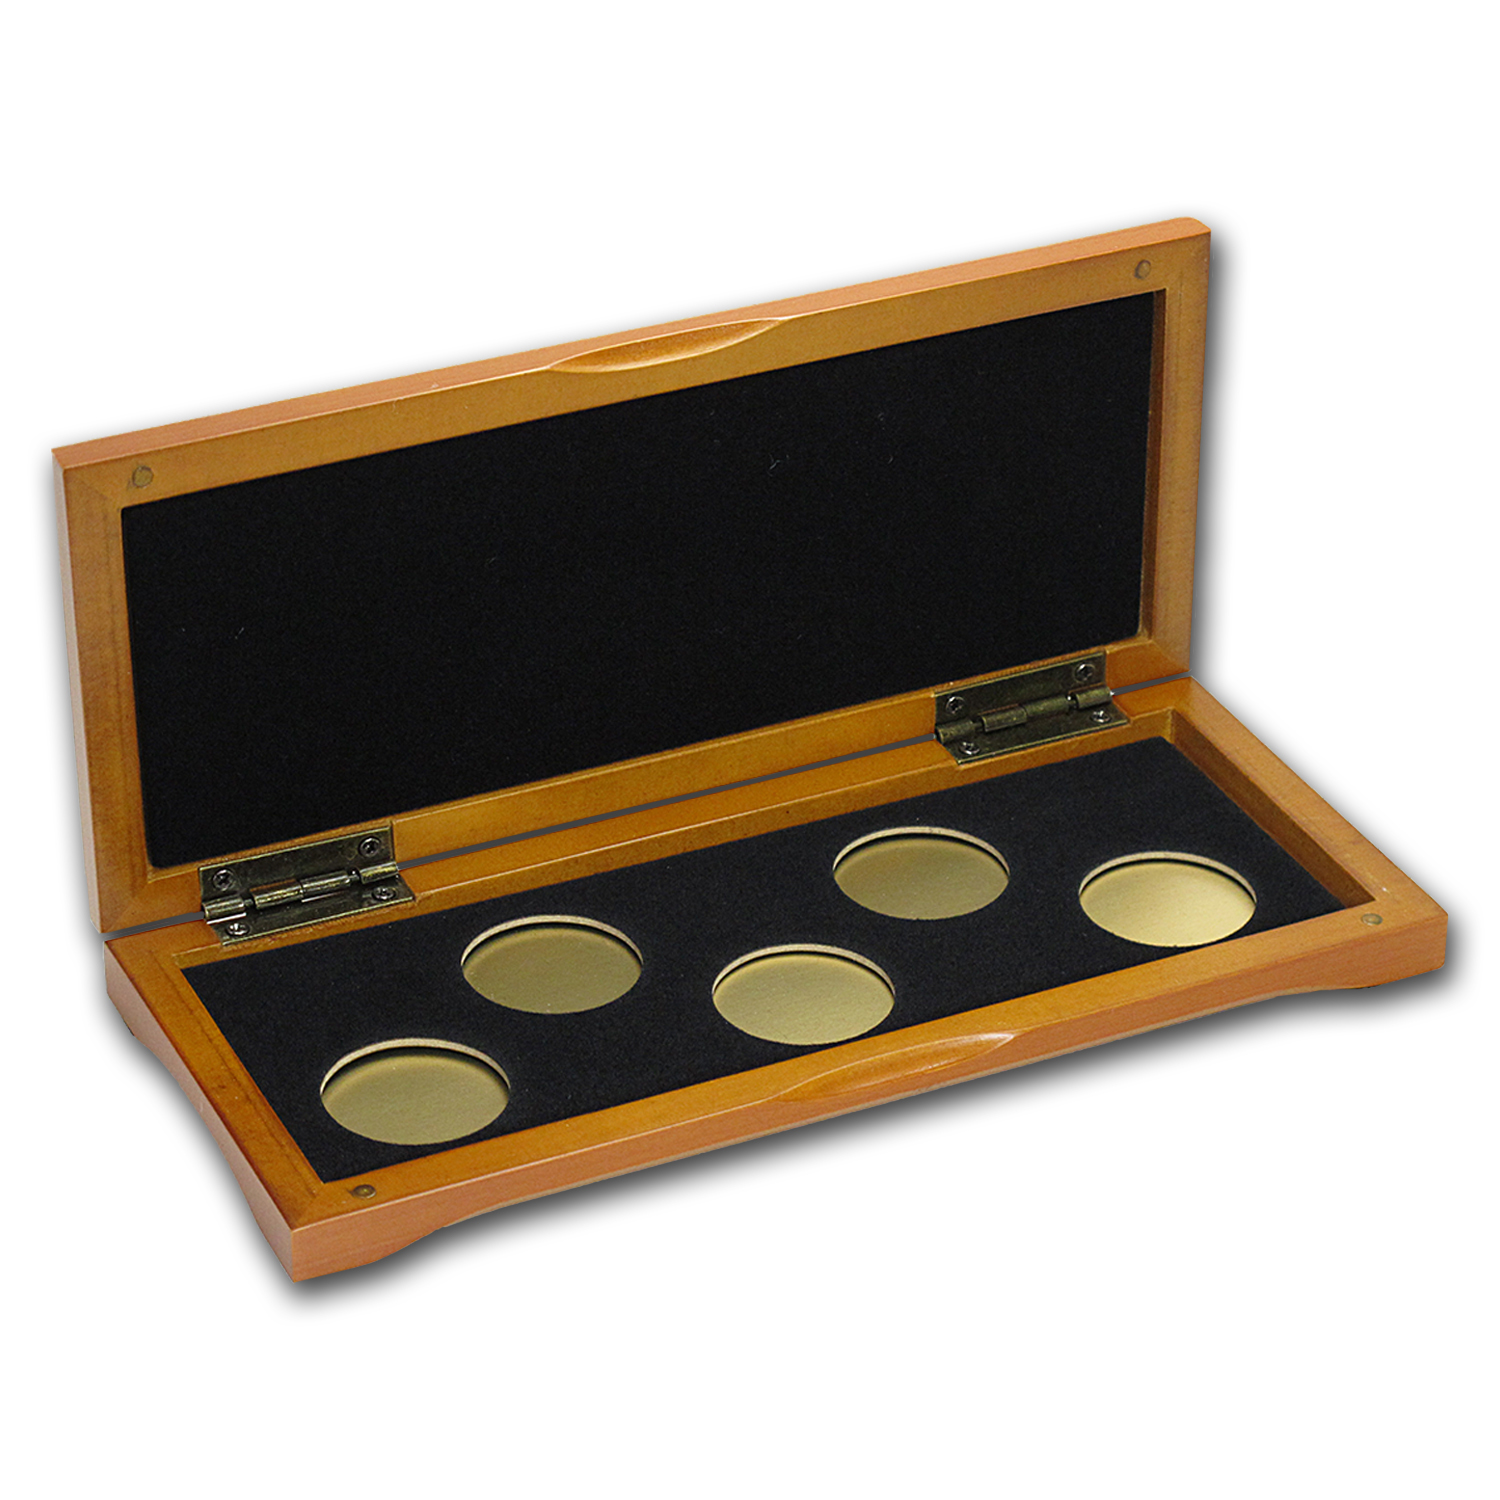 5-Coin Wood Presentation Box - Fits Up to 26 mm